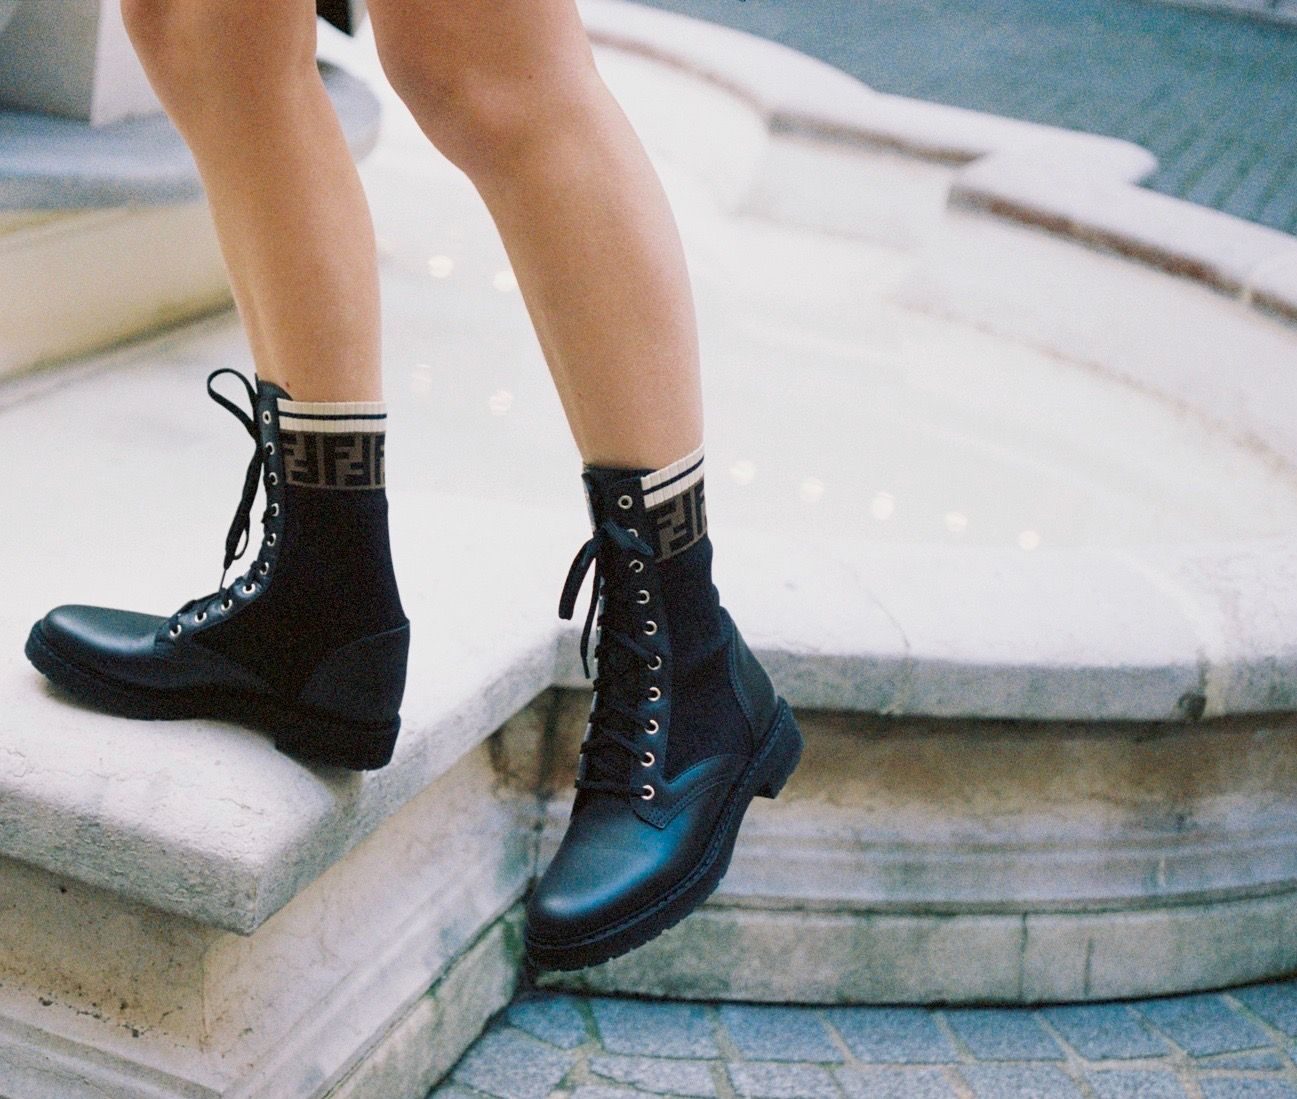 Boots, Fendi boots, Combat boot outfits